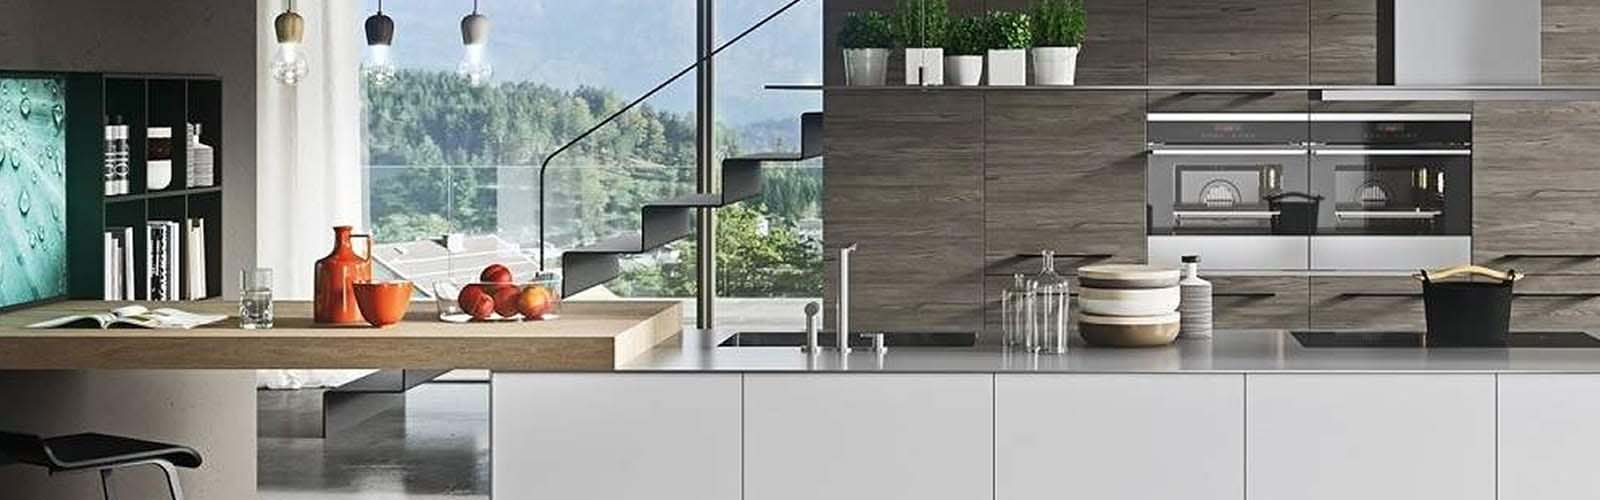 Cucine Metro Arco di Travertino